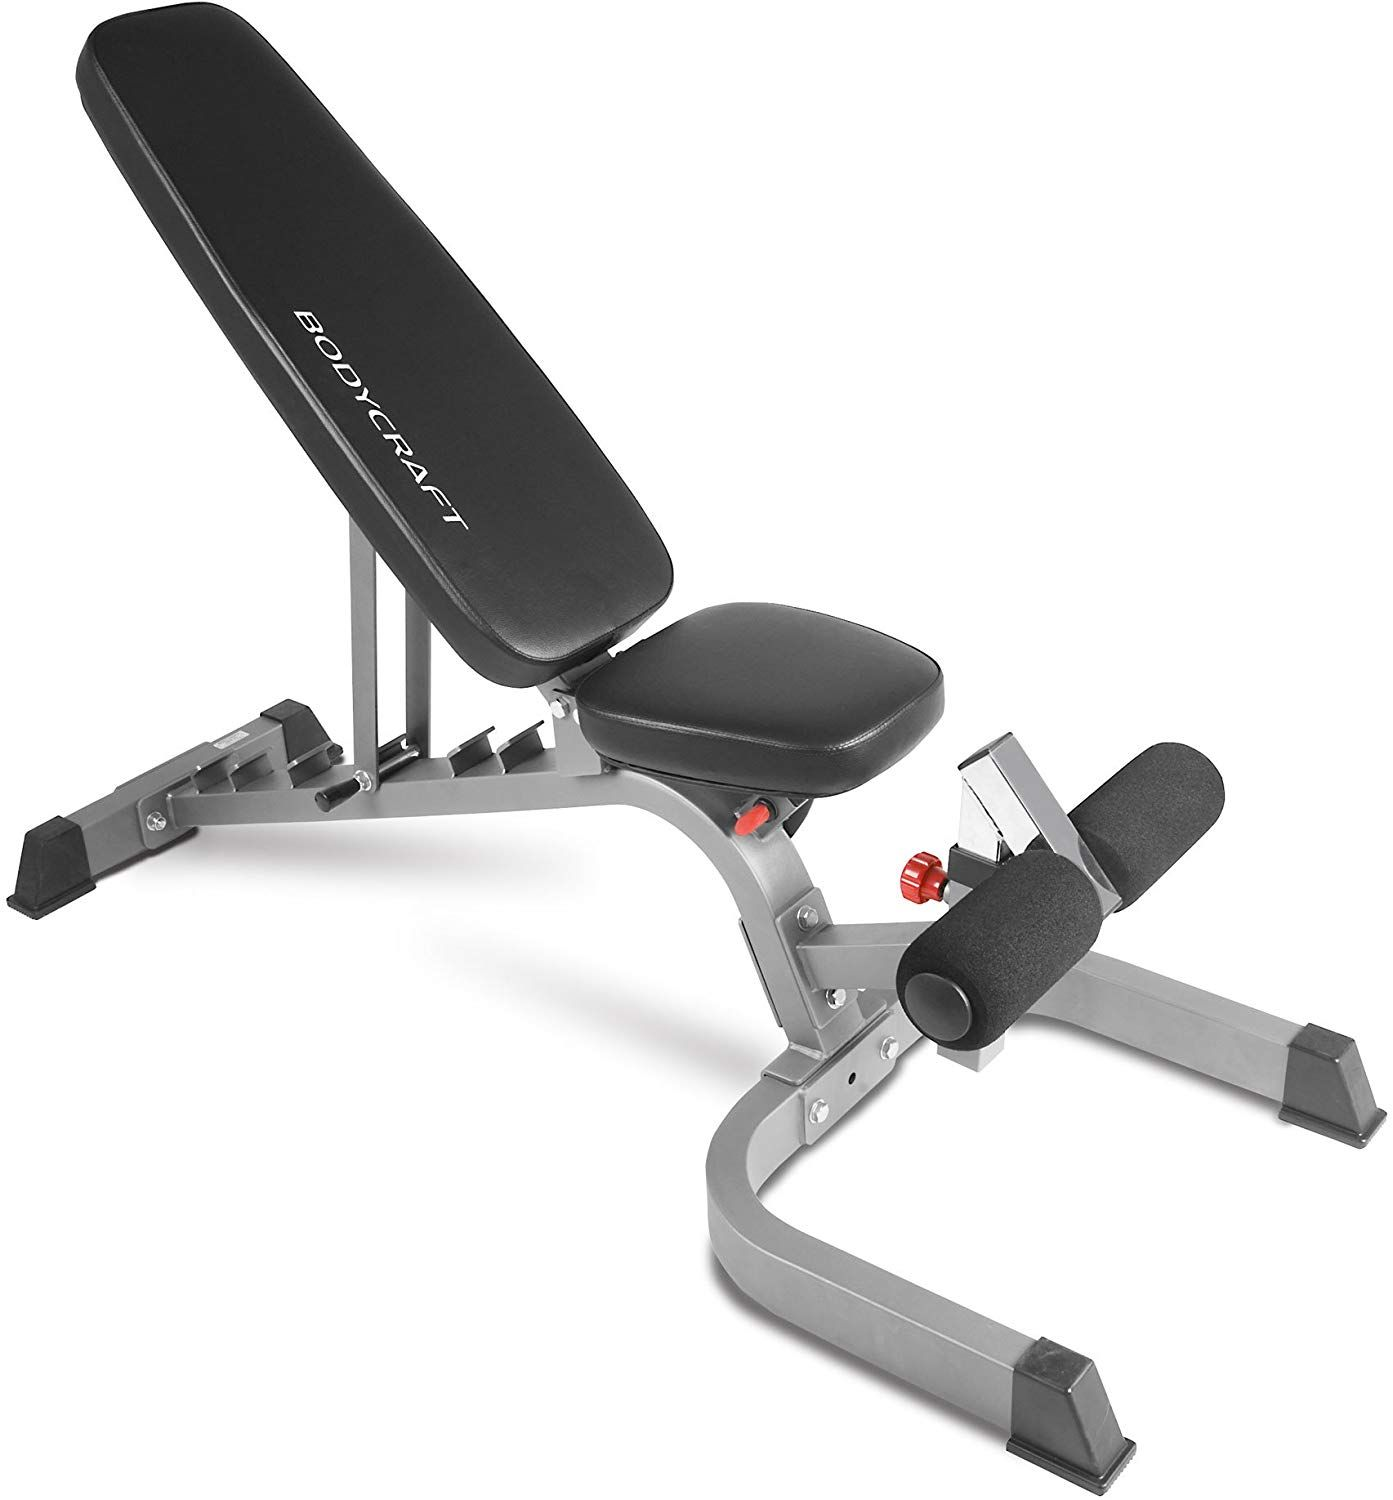 Bodycraft F602 Flat/Incline/Decline Bench*** For more